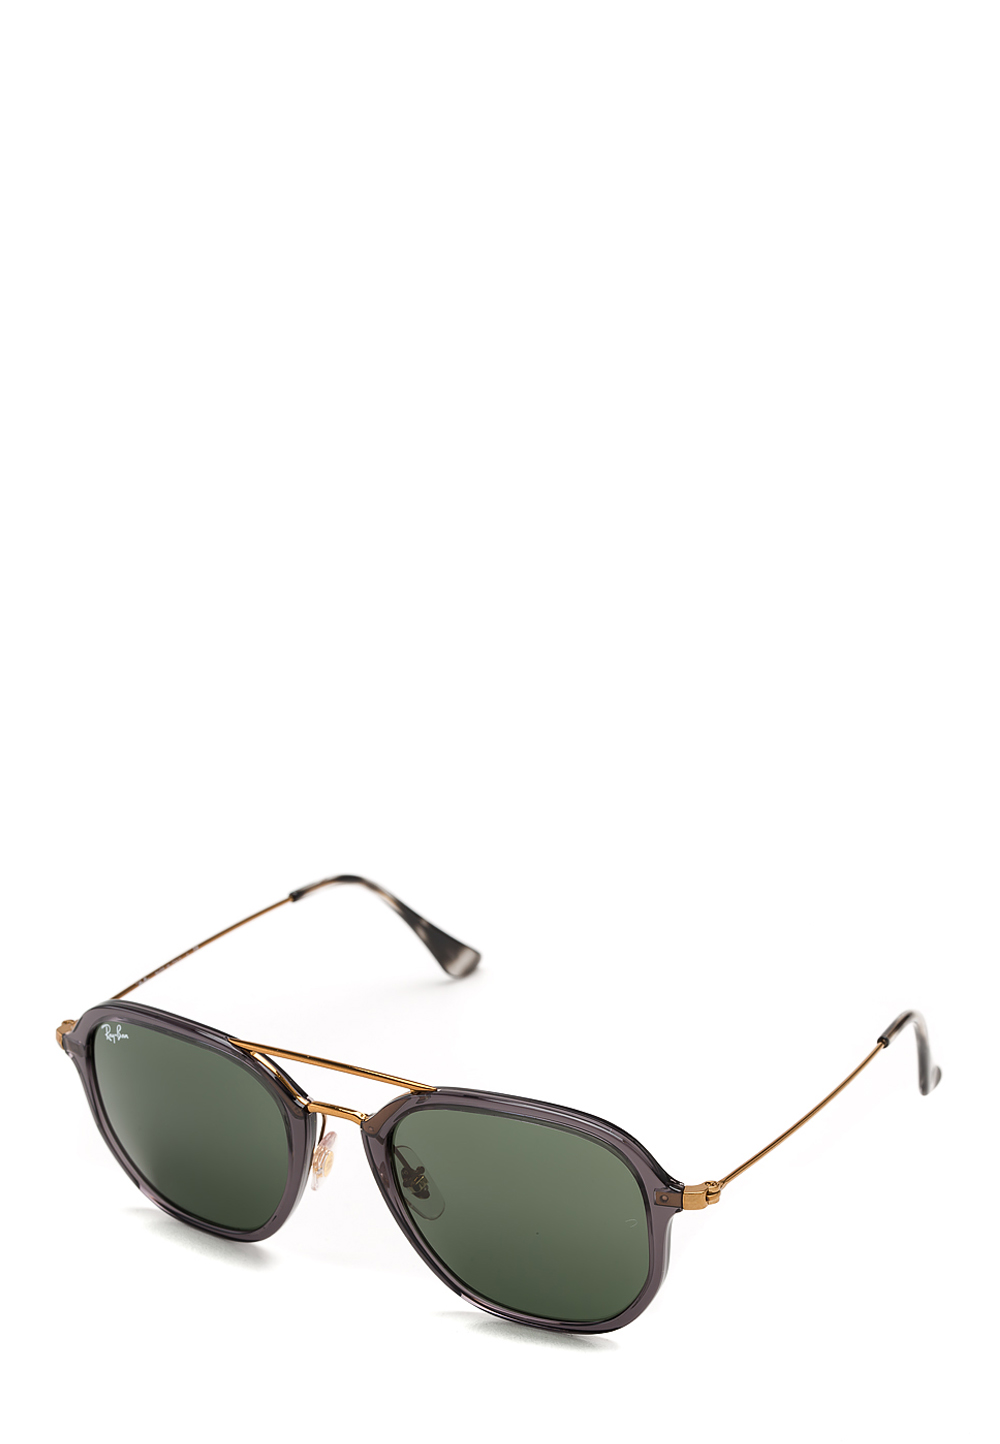 Sonnenbrille 4273, UV 400, anthrazit/gold